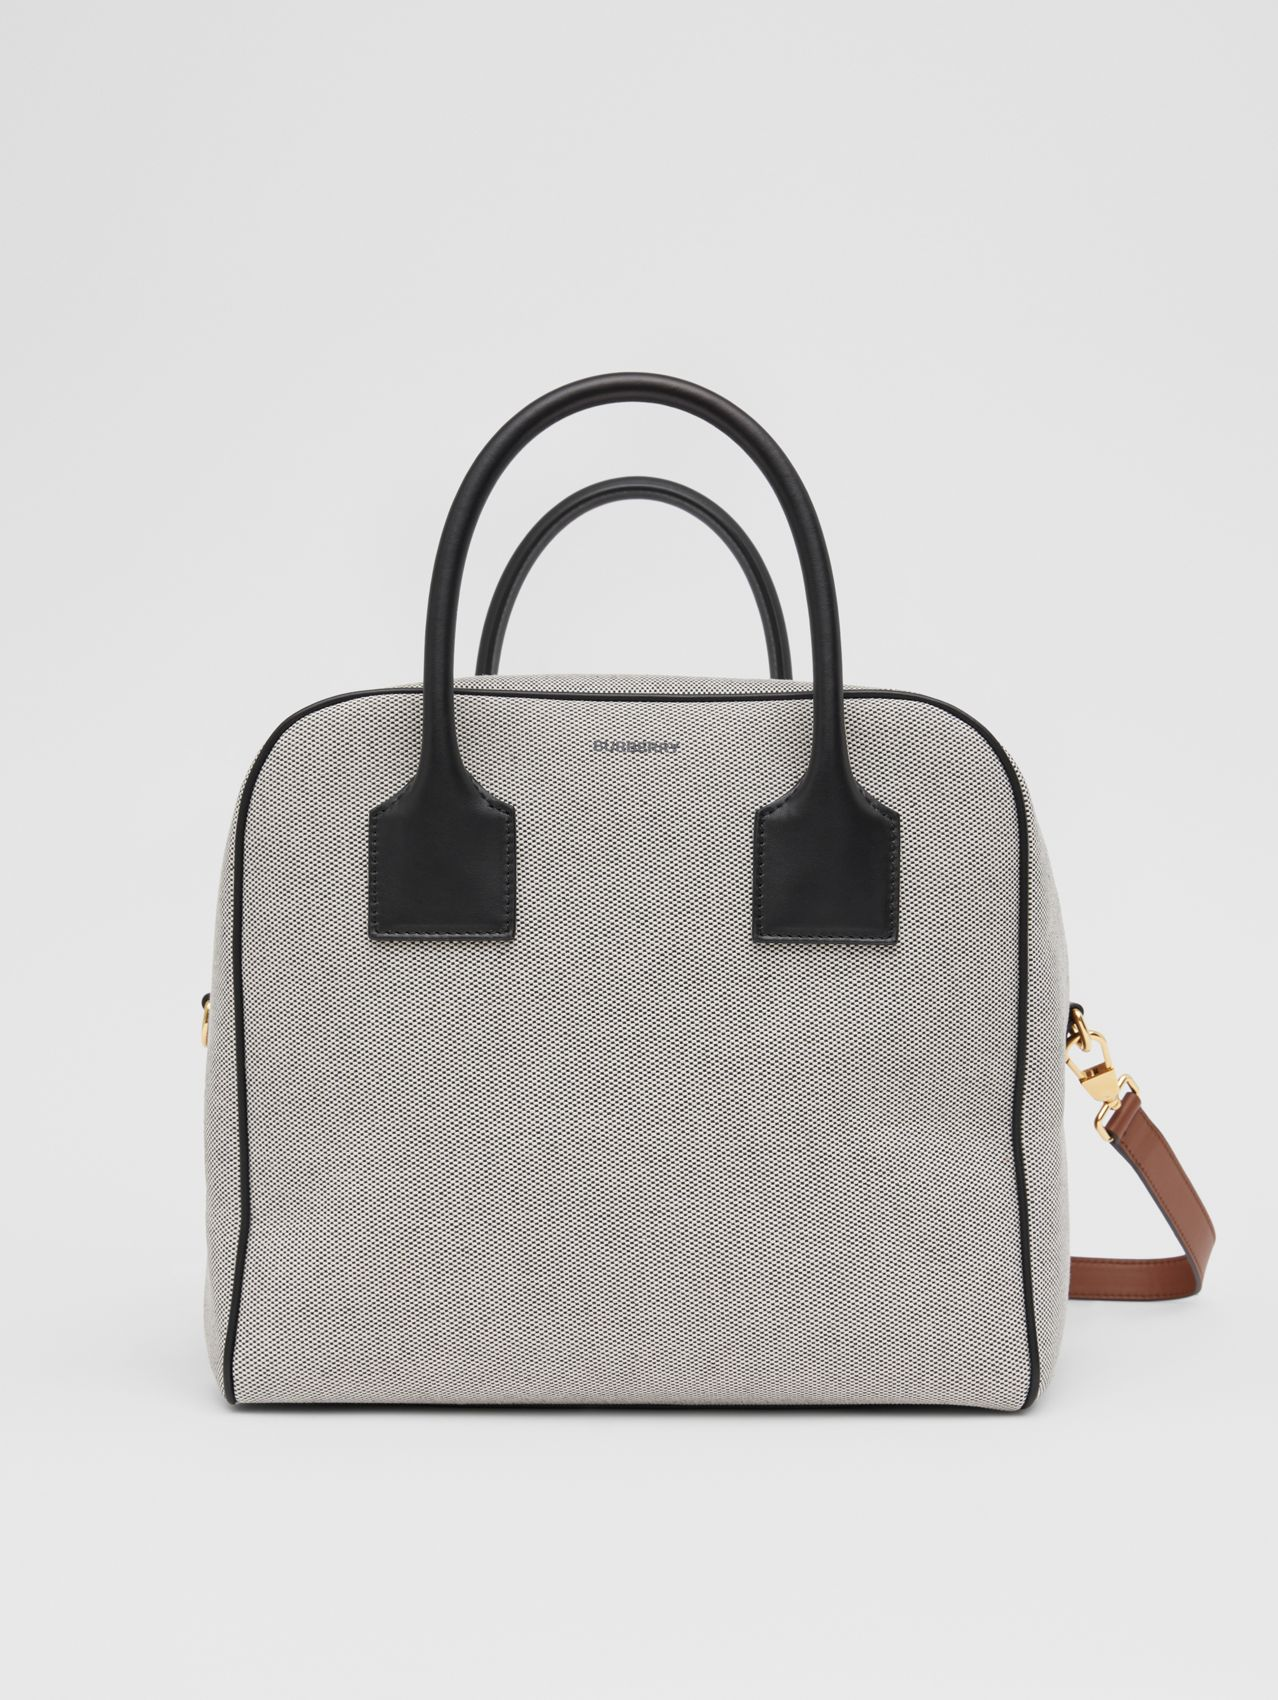 Medium Canvas and Leather Cube Bag in Black/tan